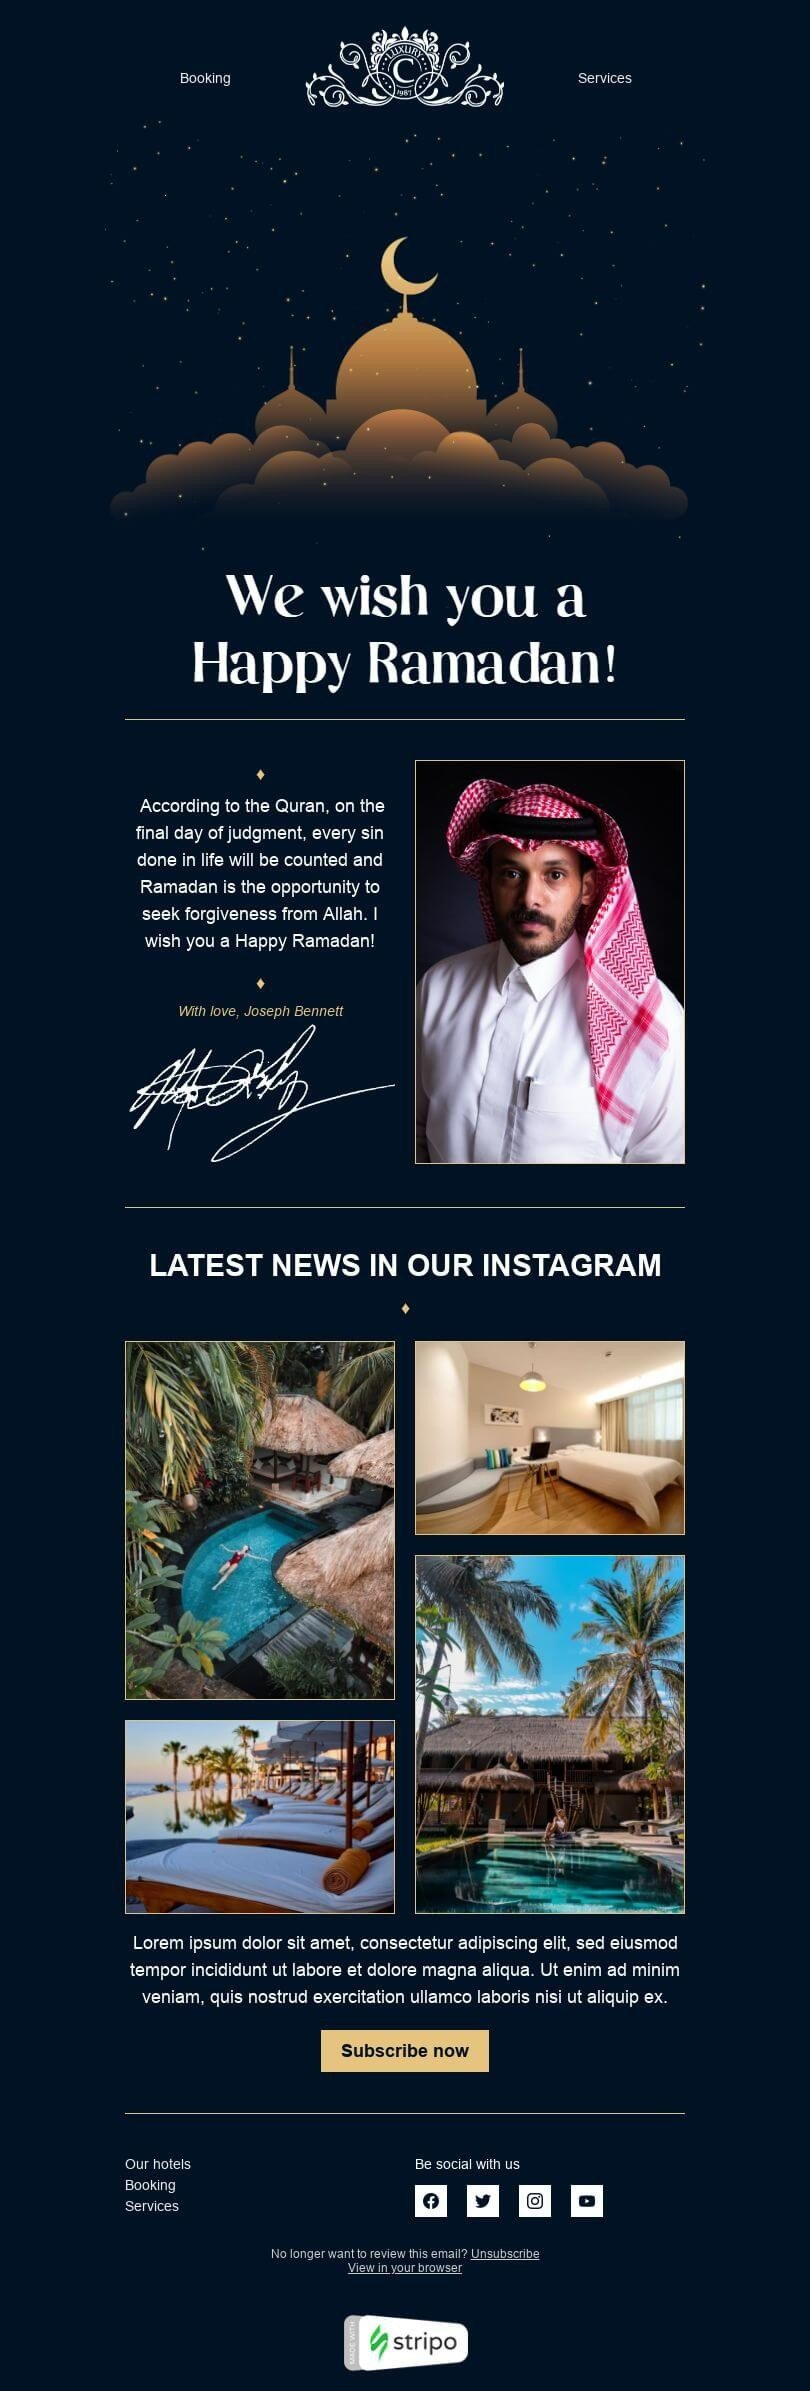 Ramadan Email Template «Luxury Hotel» for Hotels industry desktop view